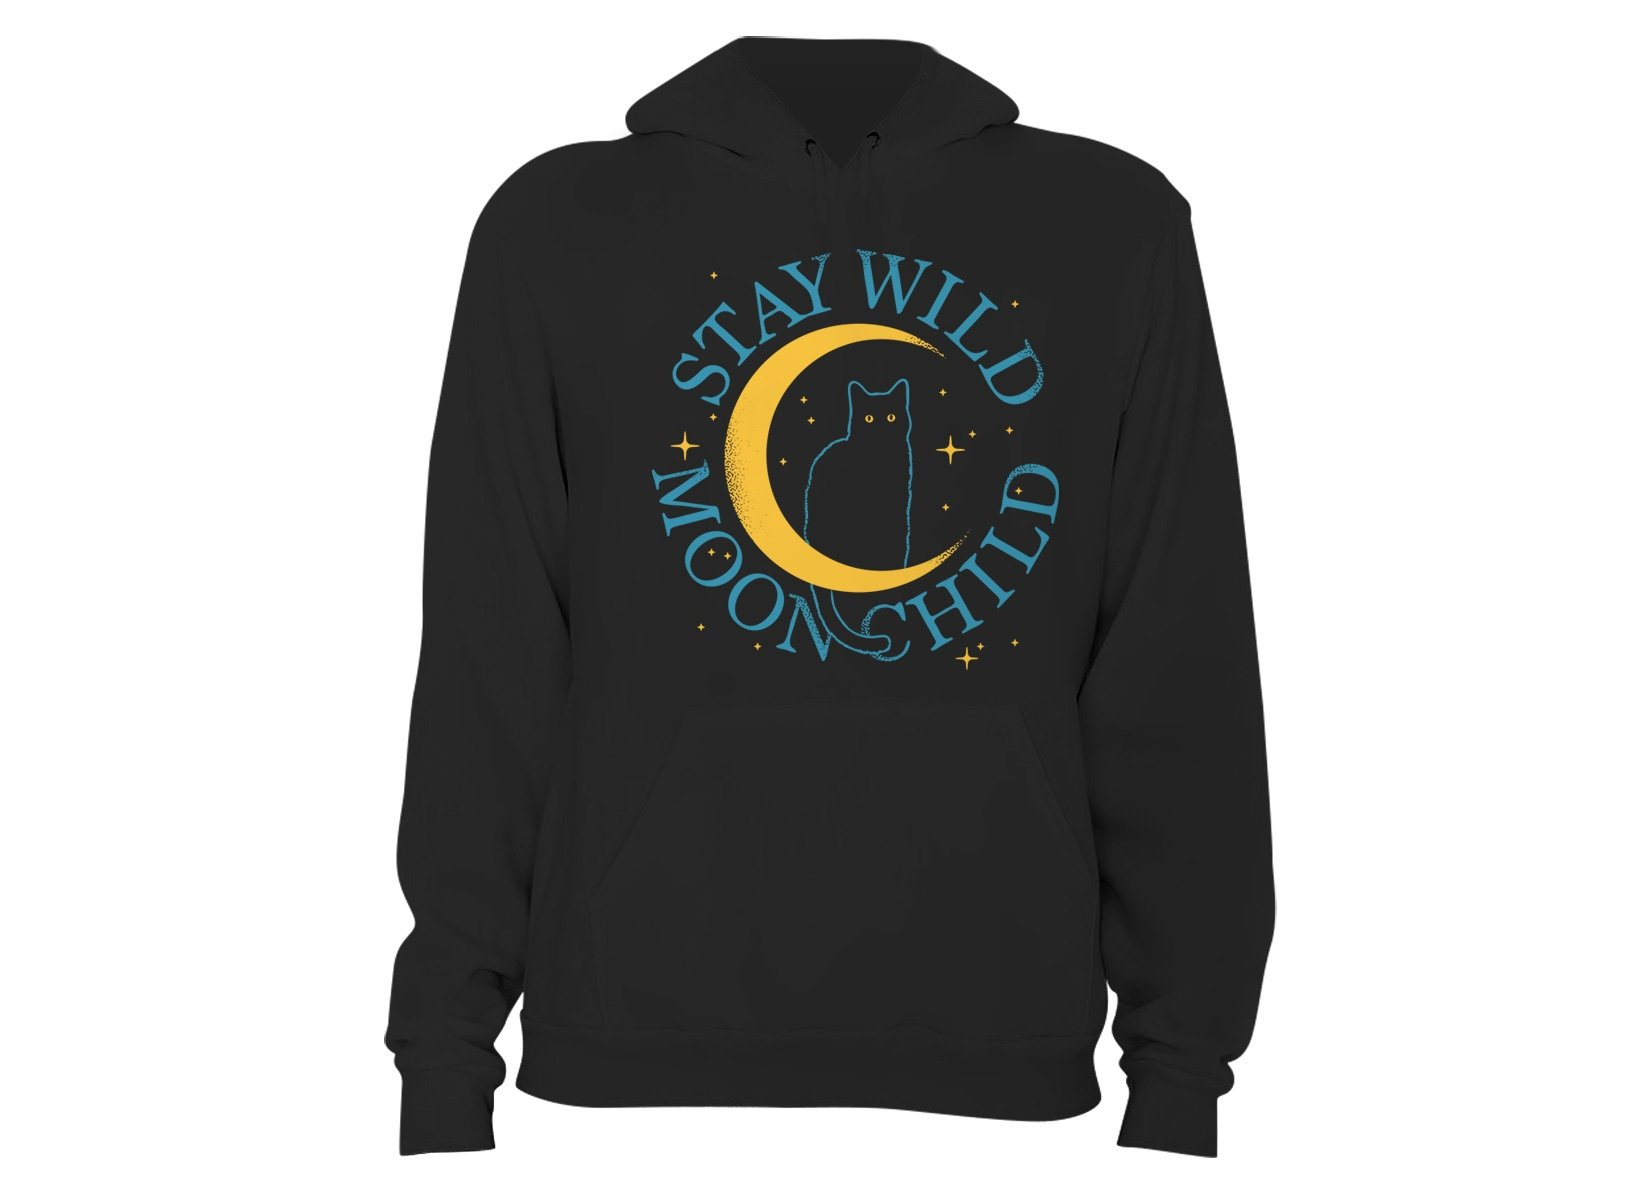 Stay Wild Moon Child on Hoodie